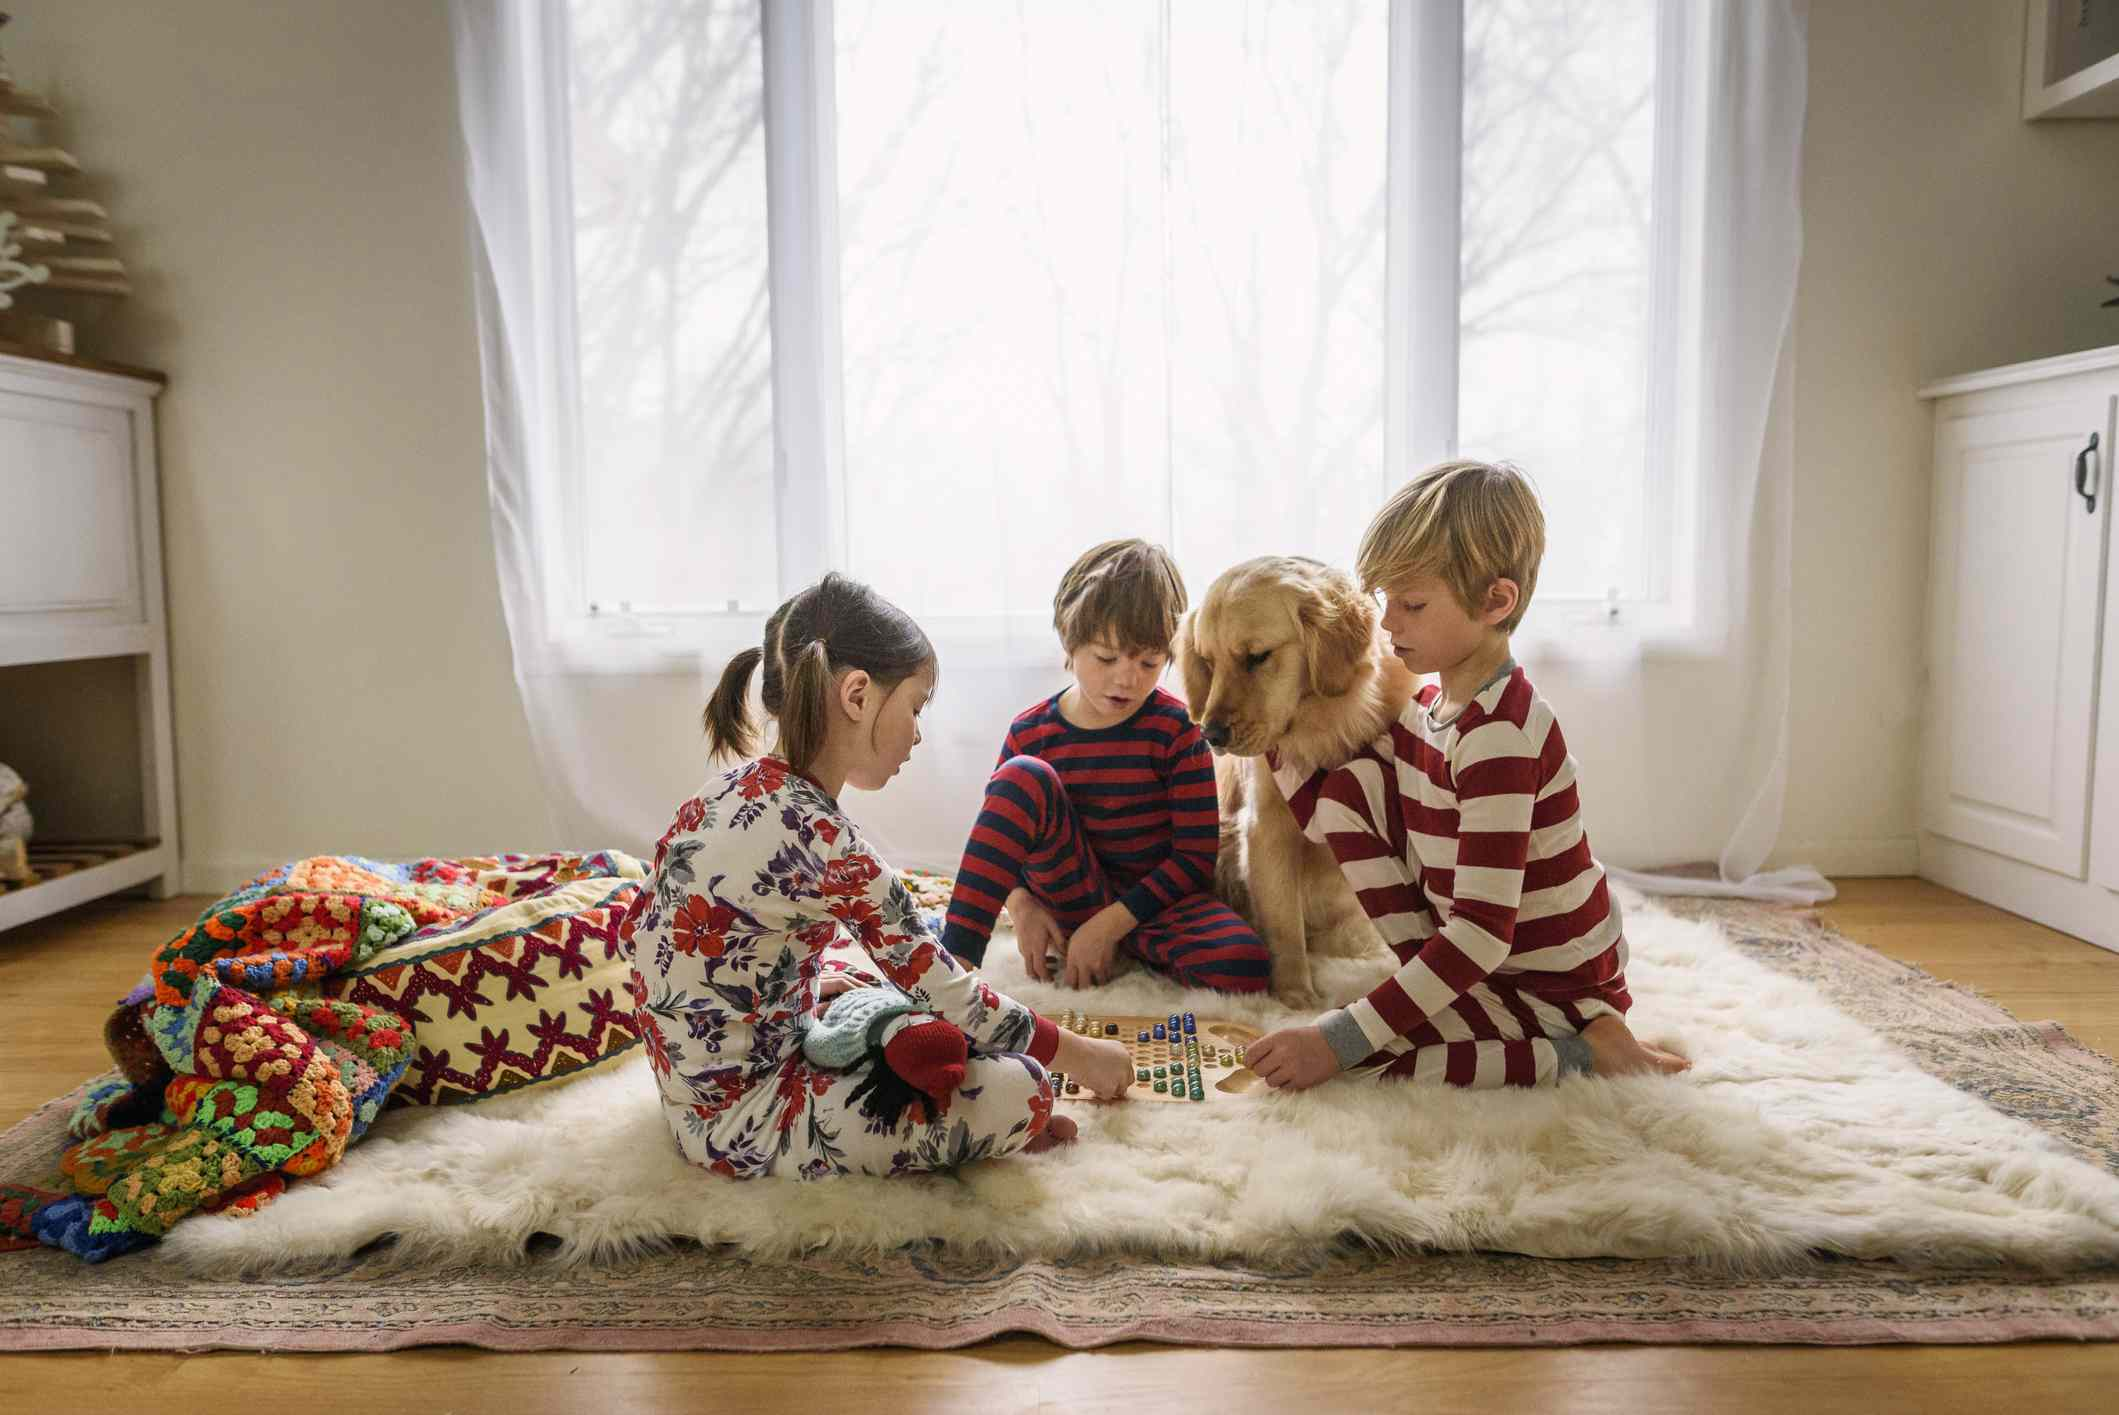 Kid's playing a board game with dog